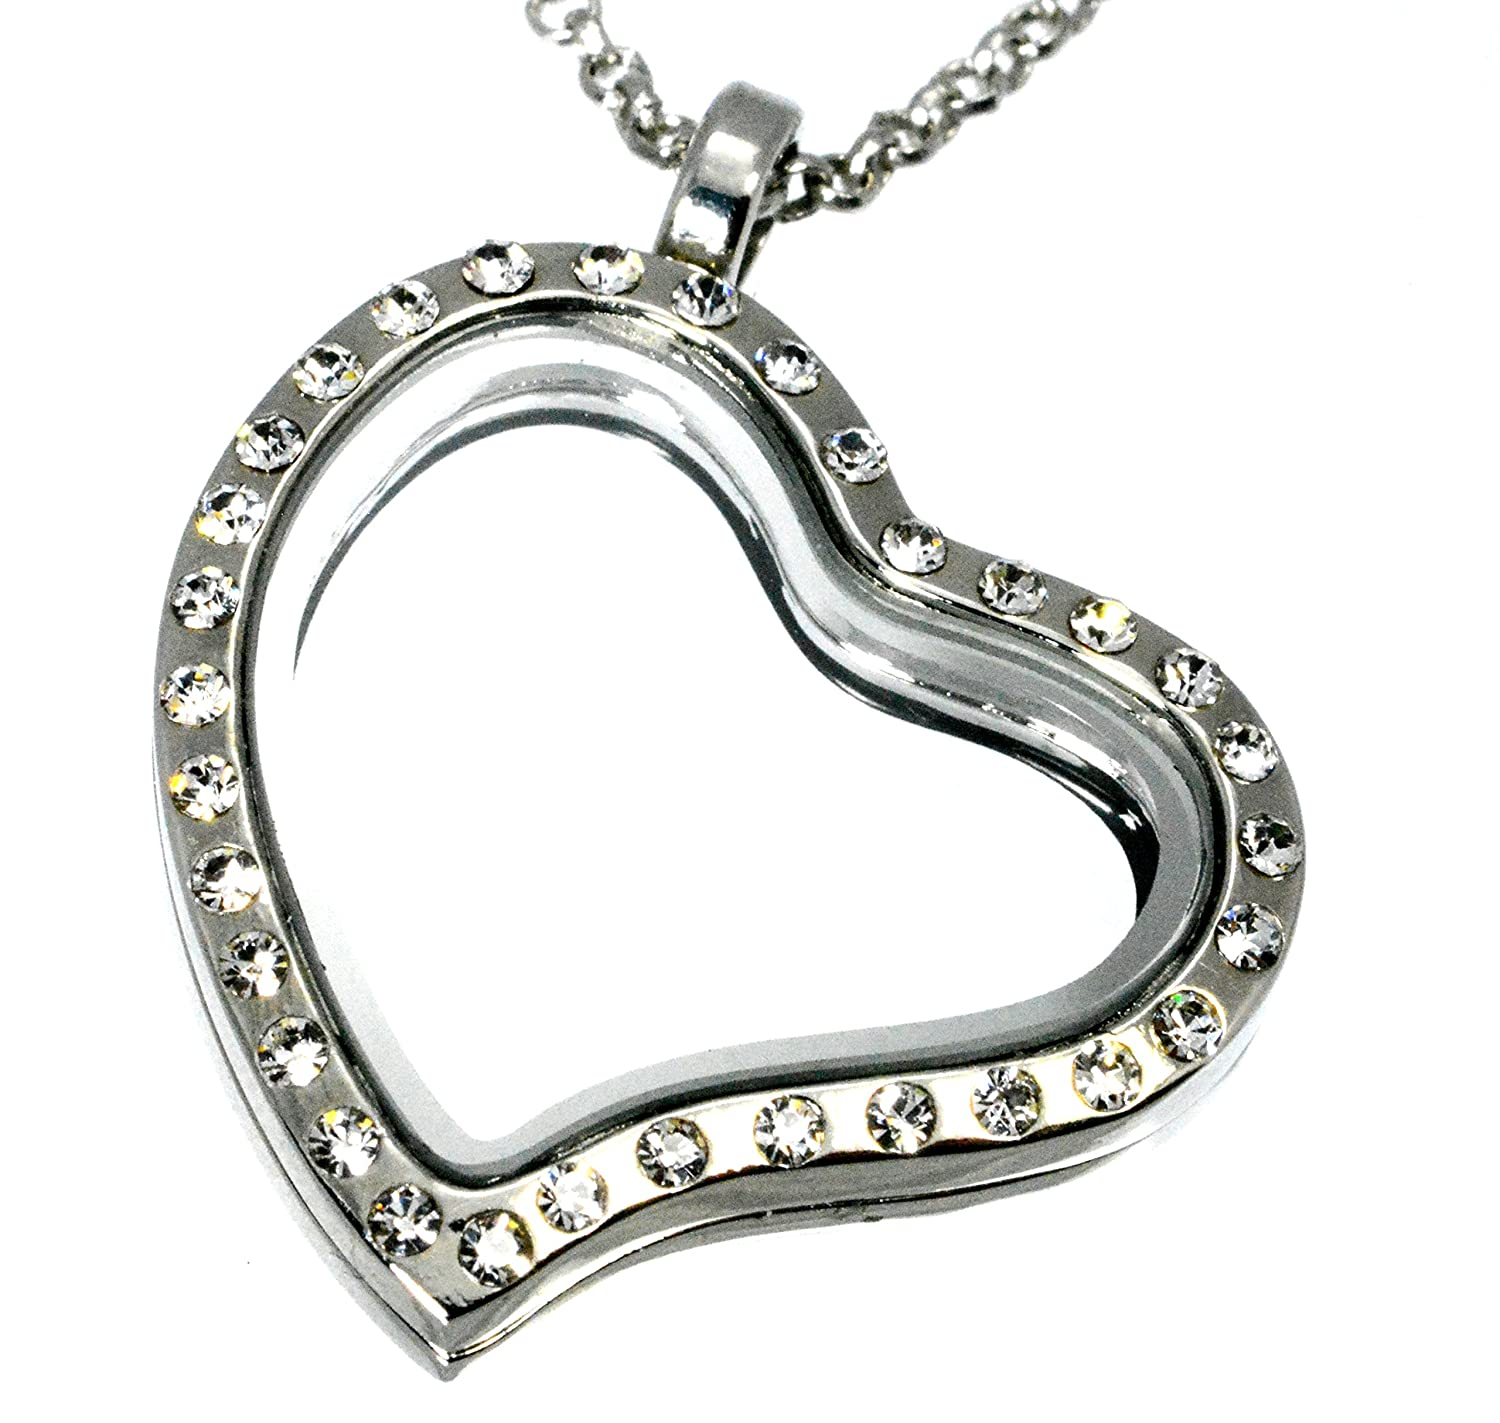 lockets com locket dp crystal jewelry amazon rim heart charm necklace close clear silvertone magnetic shaped floating